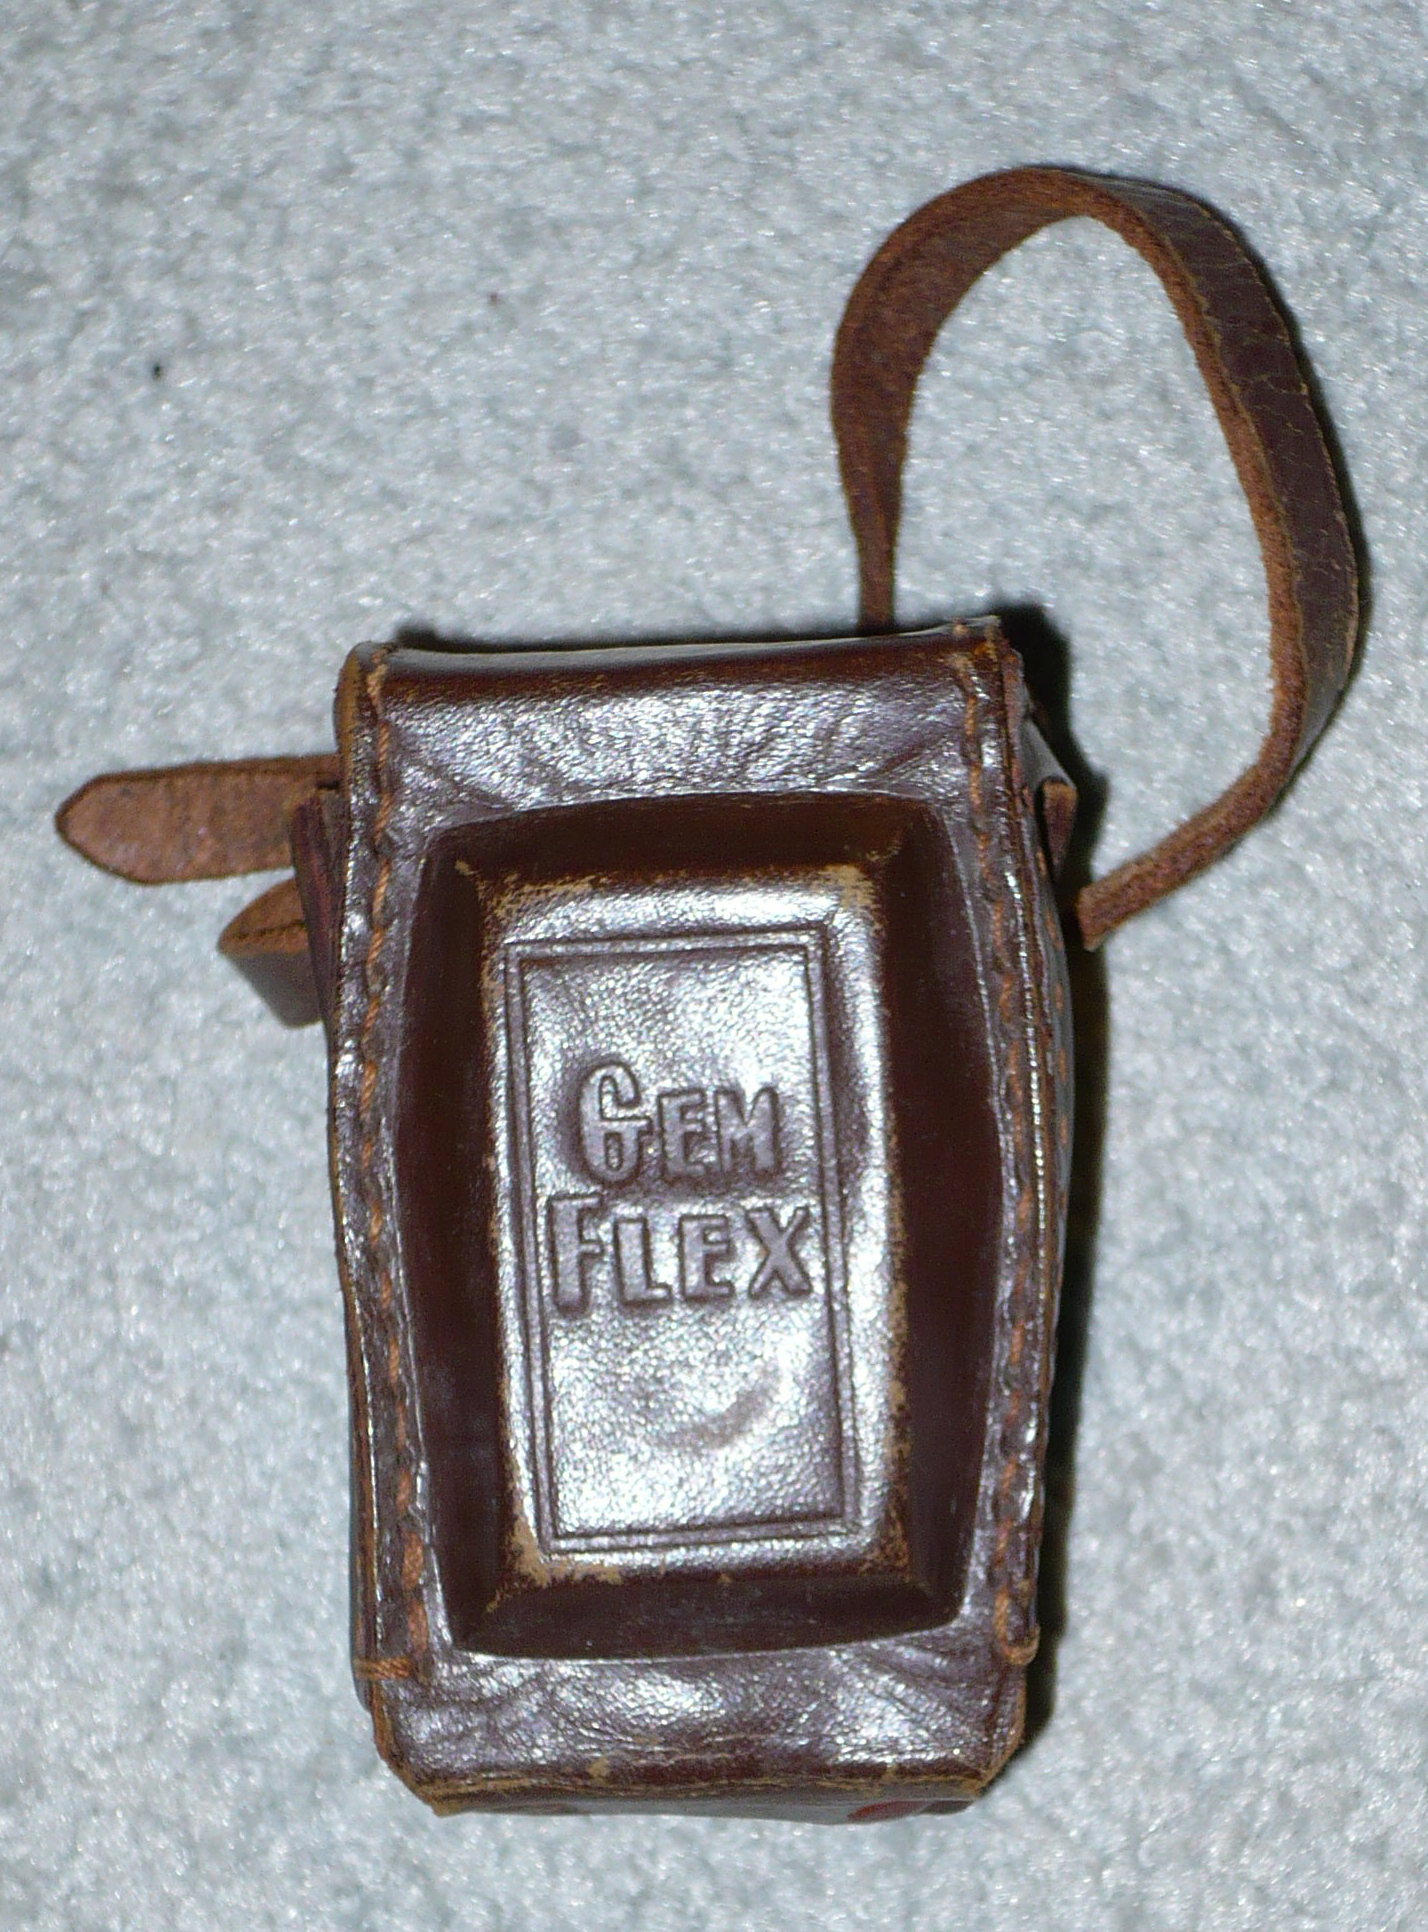 Gemflex  leather case.jpg